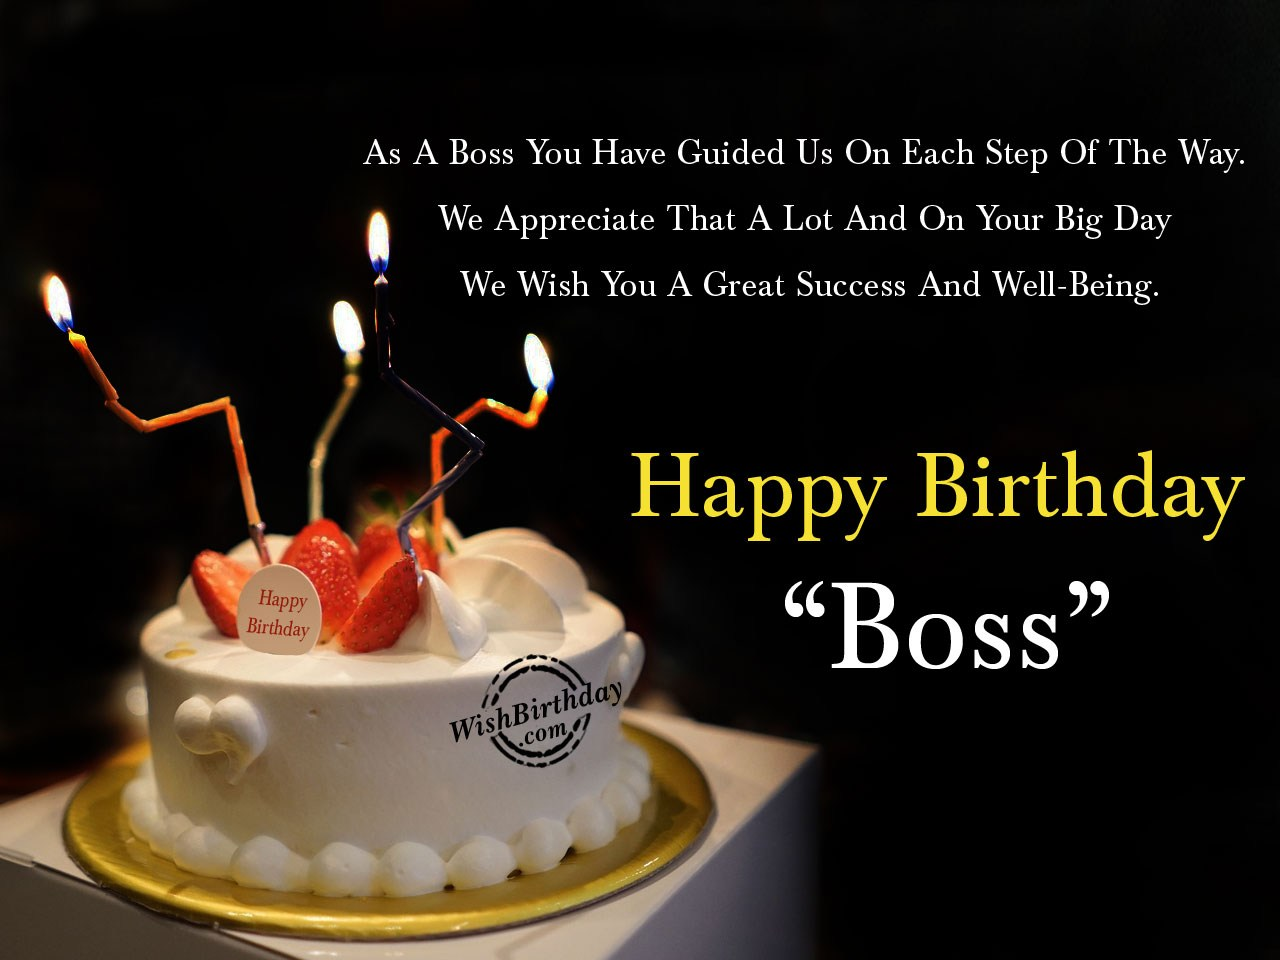 Birthday Greetings To Boss Birthday Wishes For Boss - Birthday Images, Pictures